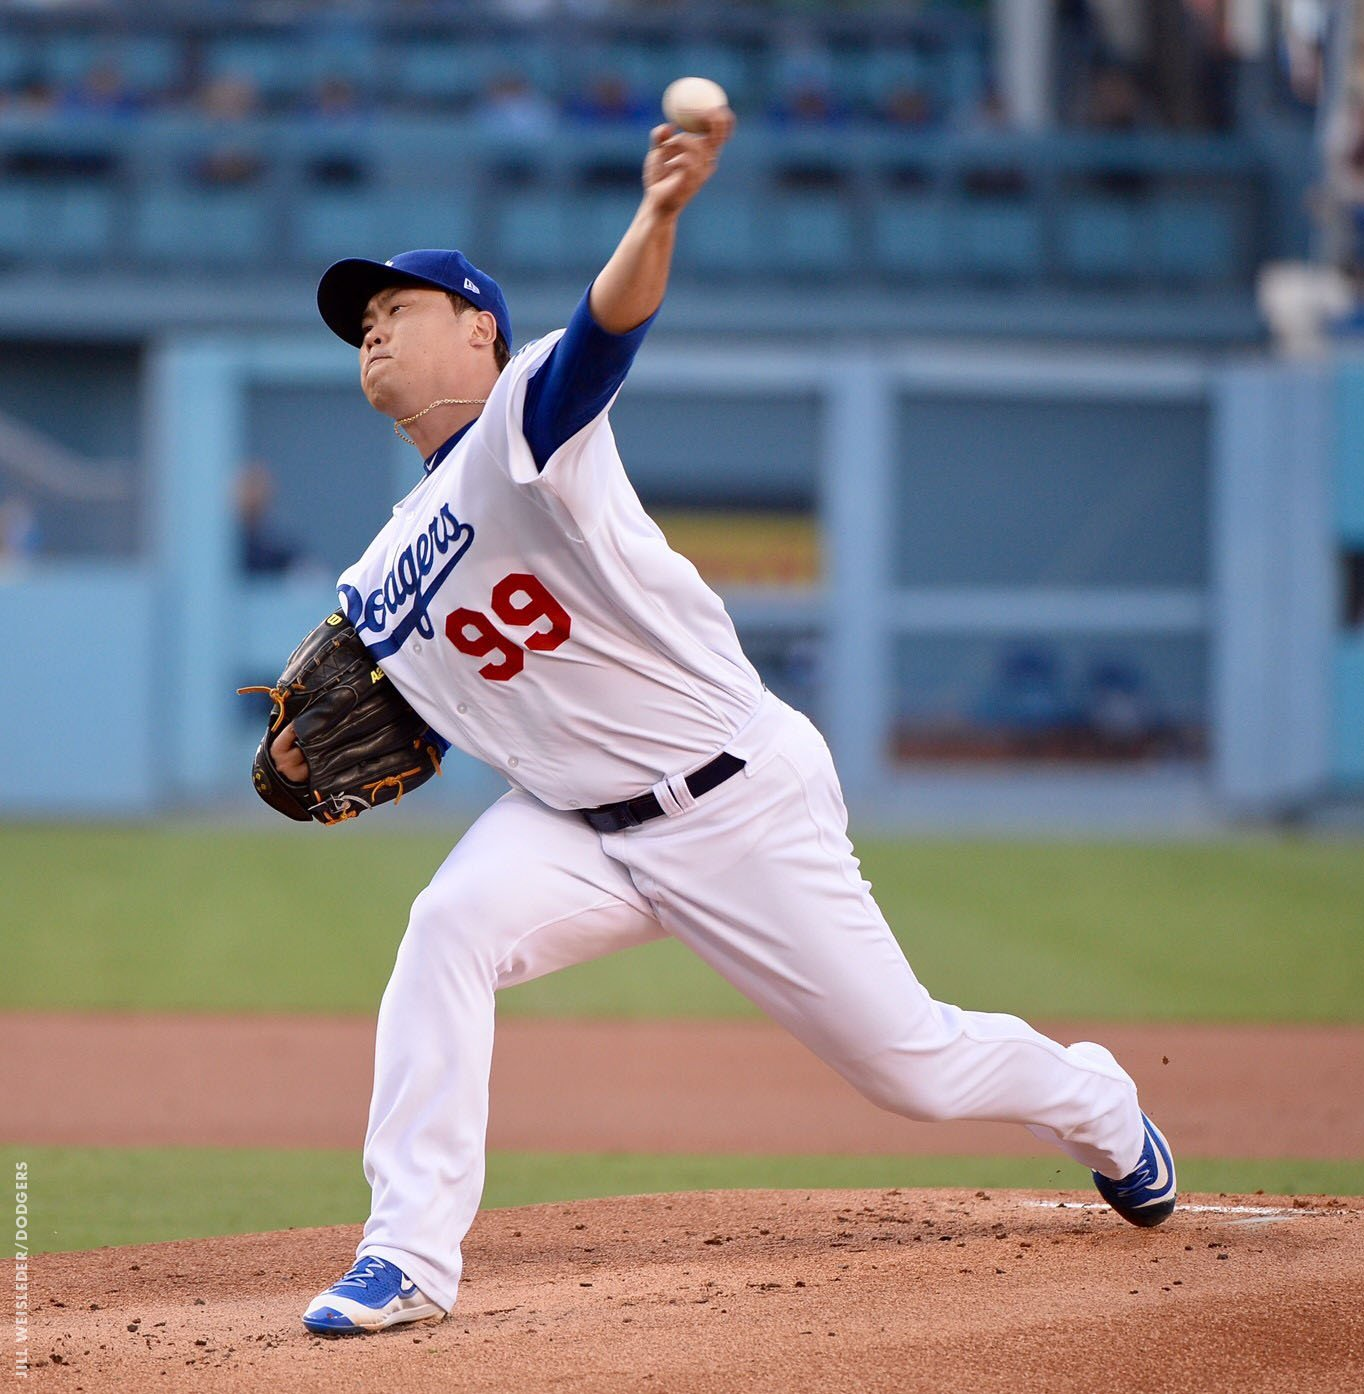 Hyun-Jin Ryu's night is over after five innings. Tony Watson will take the mound in the top of the sixth. https://t.co/W2OCWlLZ8b